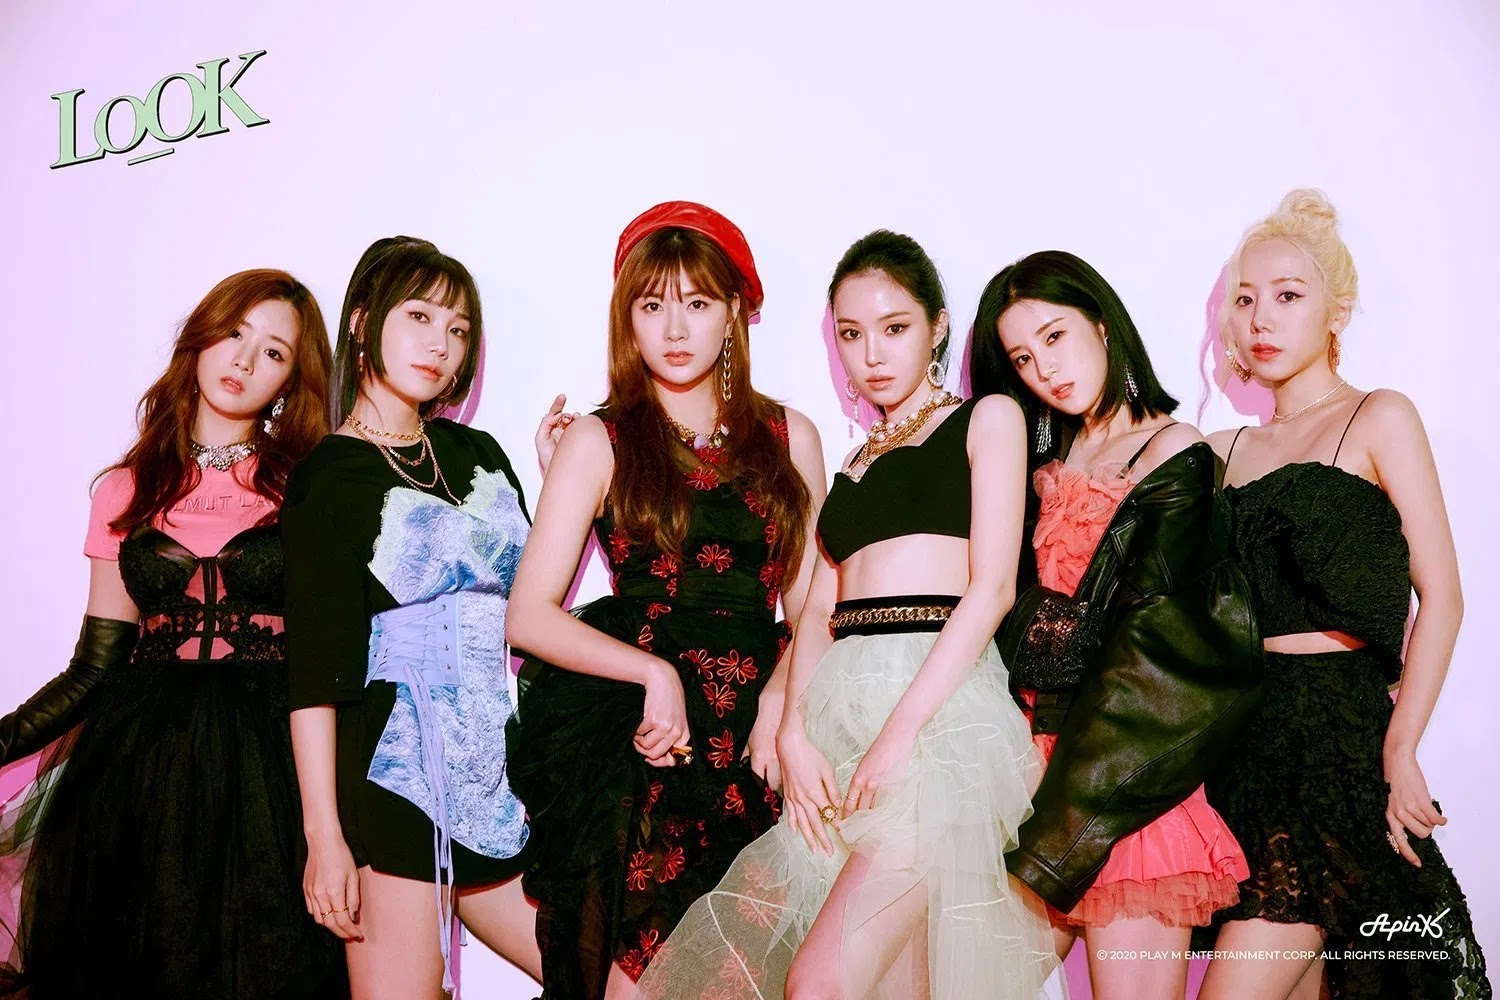 Apink Release Three Different Concepts in 'LOOK' Teaser Comeback